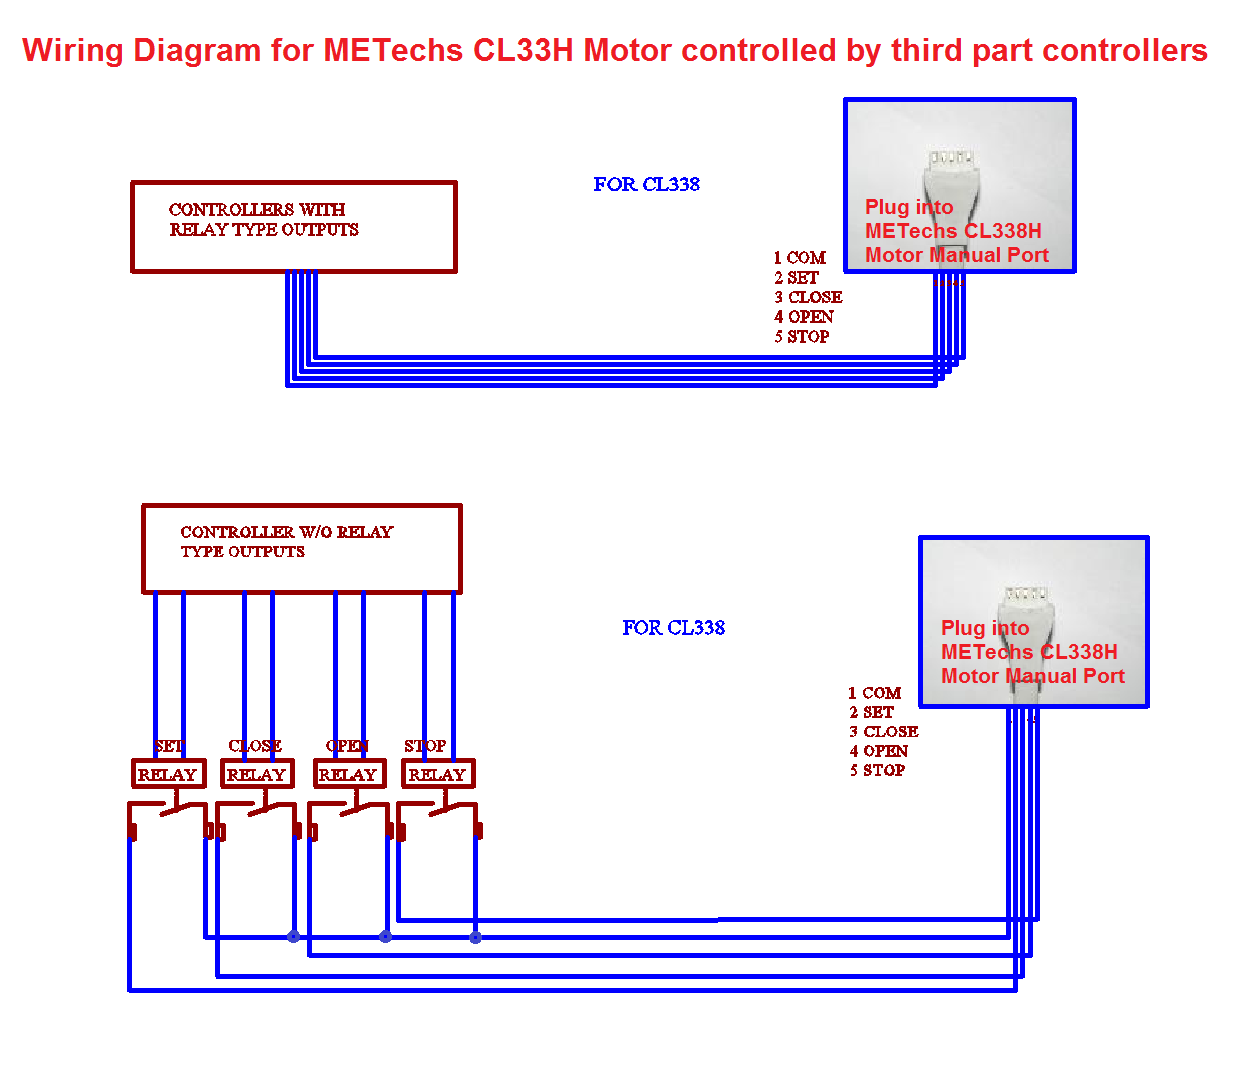 wiring diagram for clh controlled by third part controllers wiring diagram for cl33h controlled by third part controllers